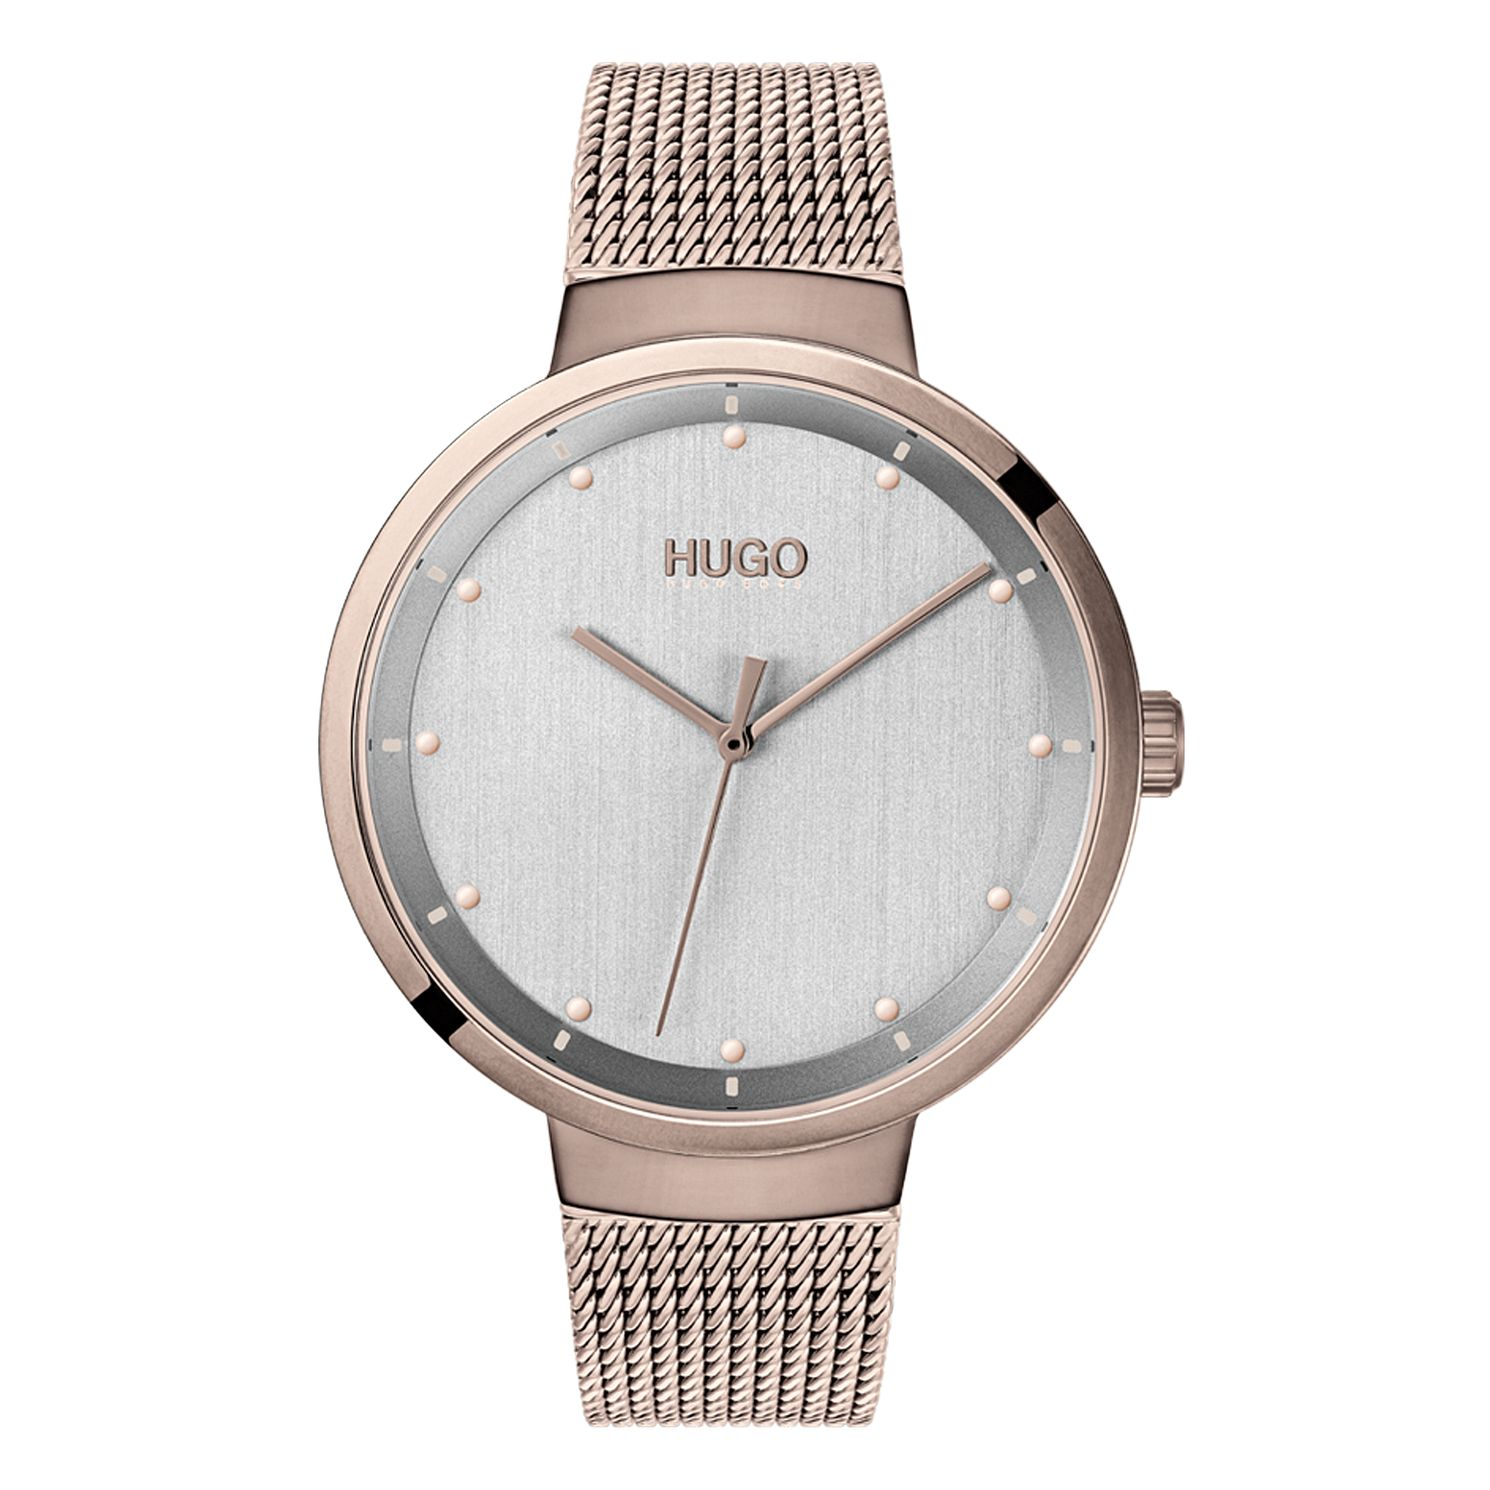 HUGO GO Ladies' Rose Gold Tone IP Mesh Bracelet Watch - Product number 2874180